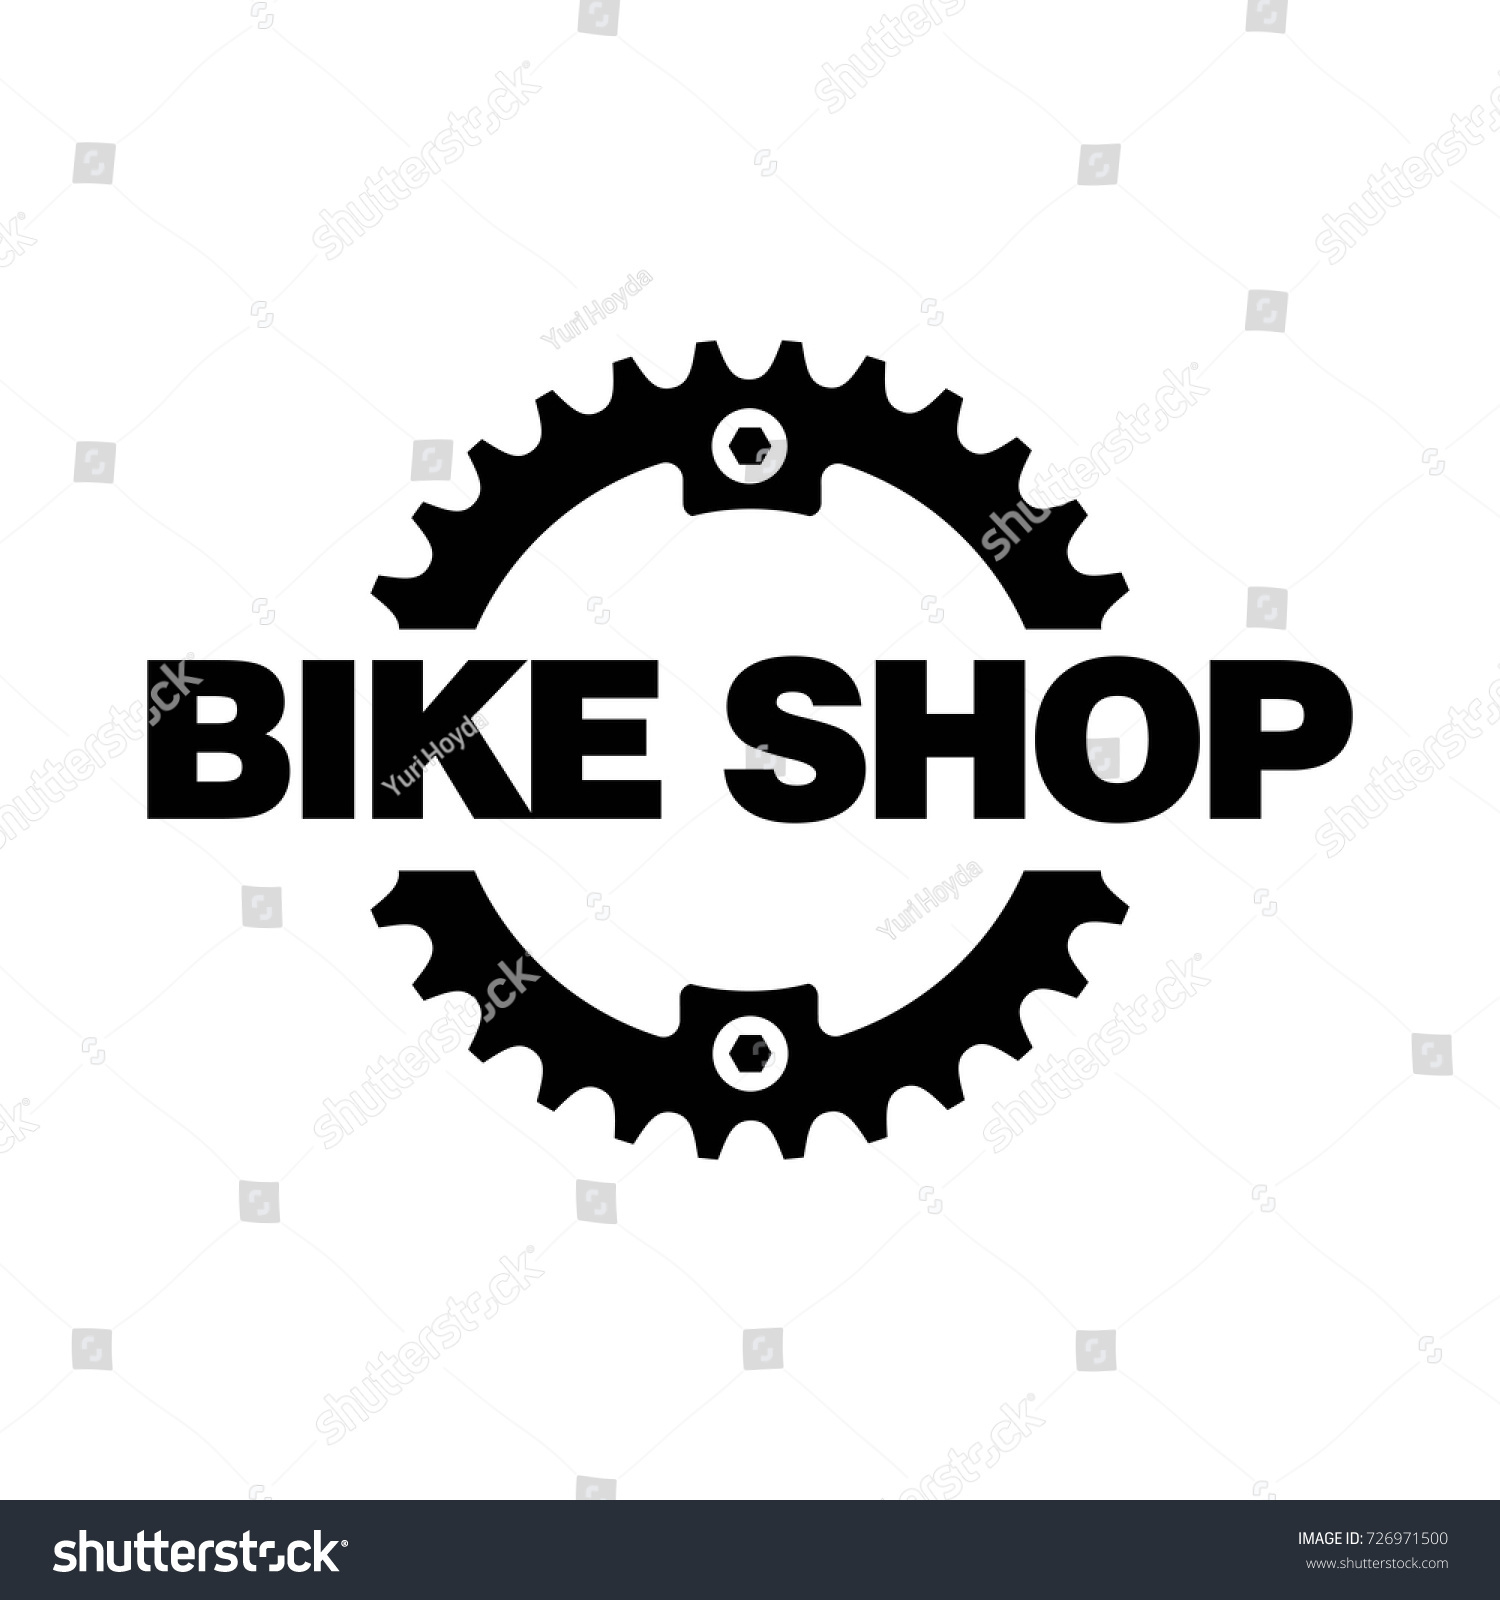 Bike Shop Logo Designchain Ring Stock Vector 726971500 Shutterstock